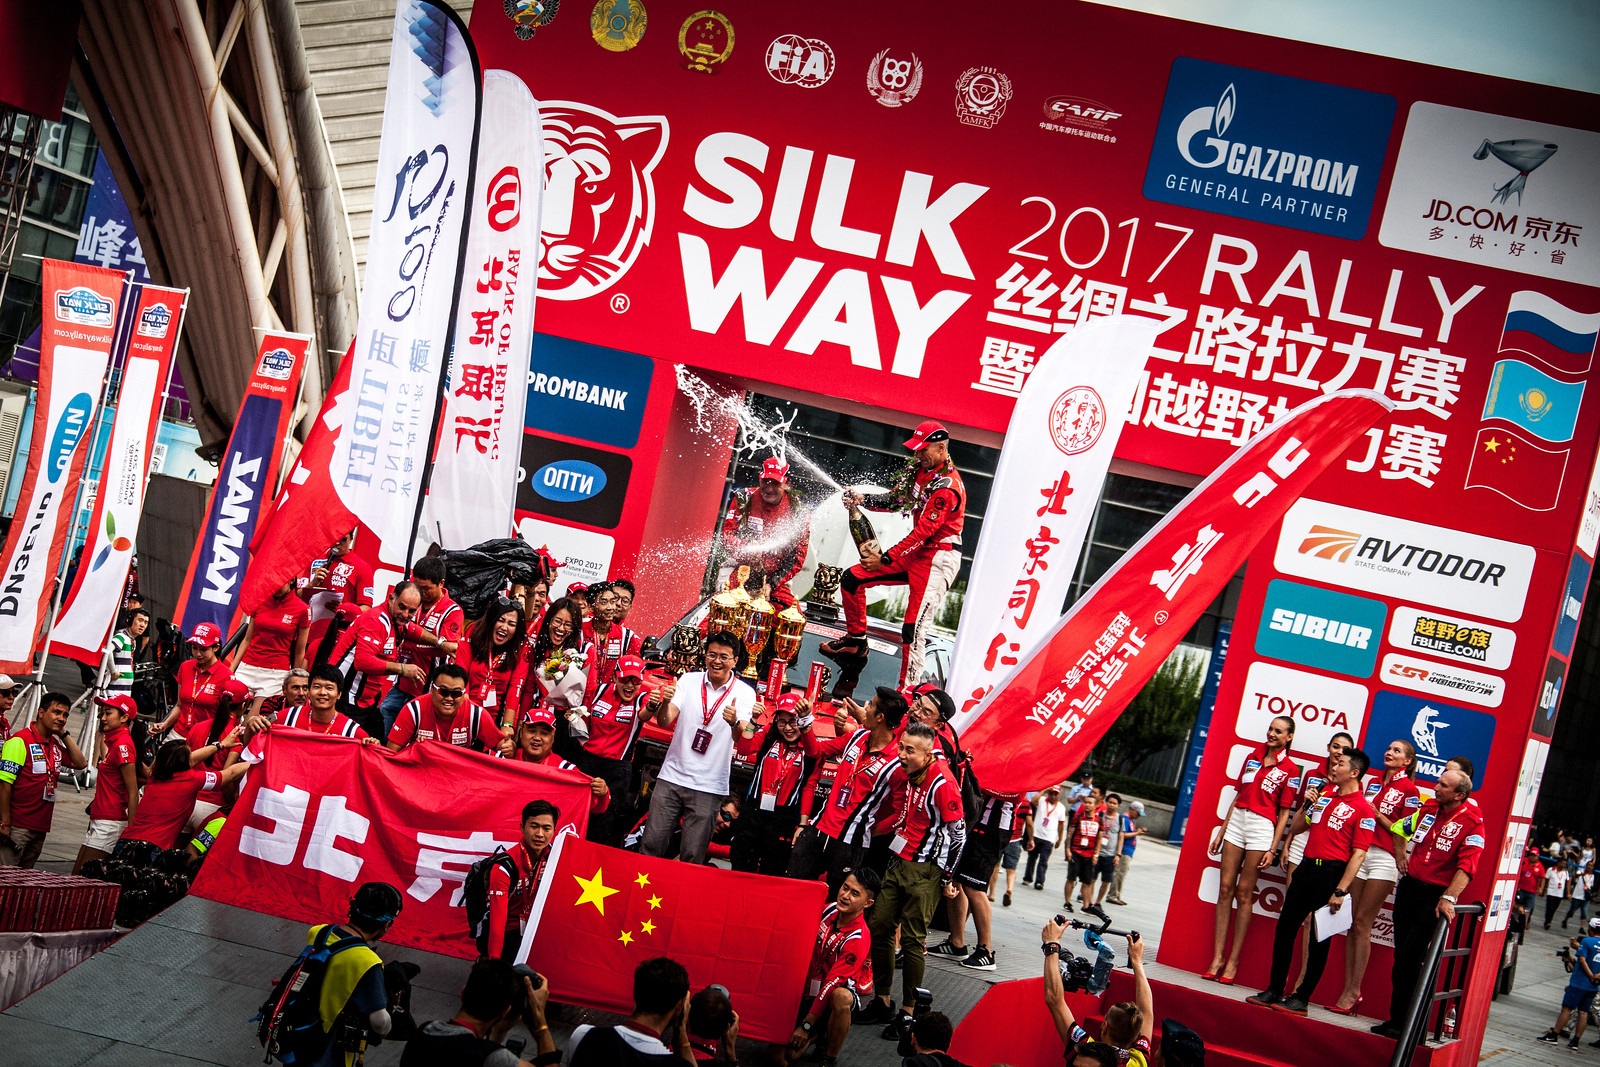 Silk Way Rally 2017 Start Ceremony in Moscow